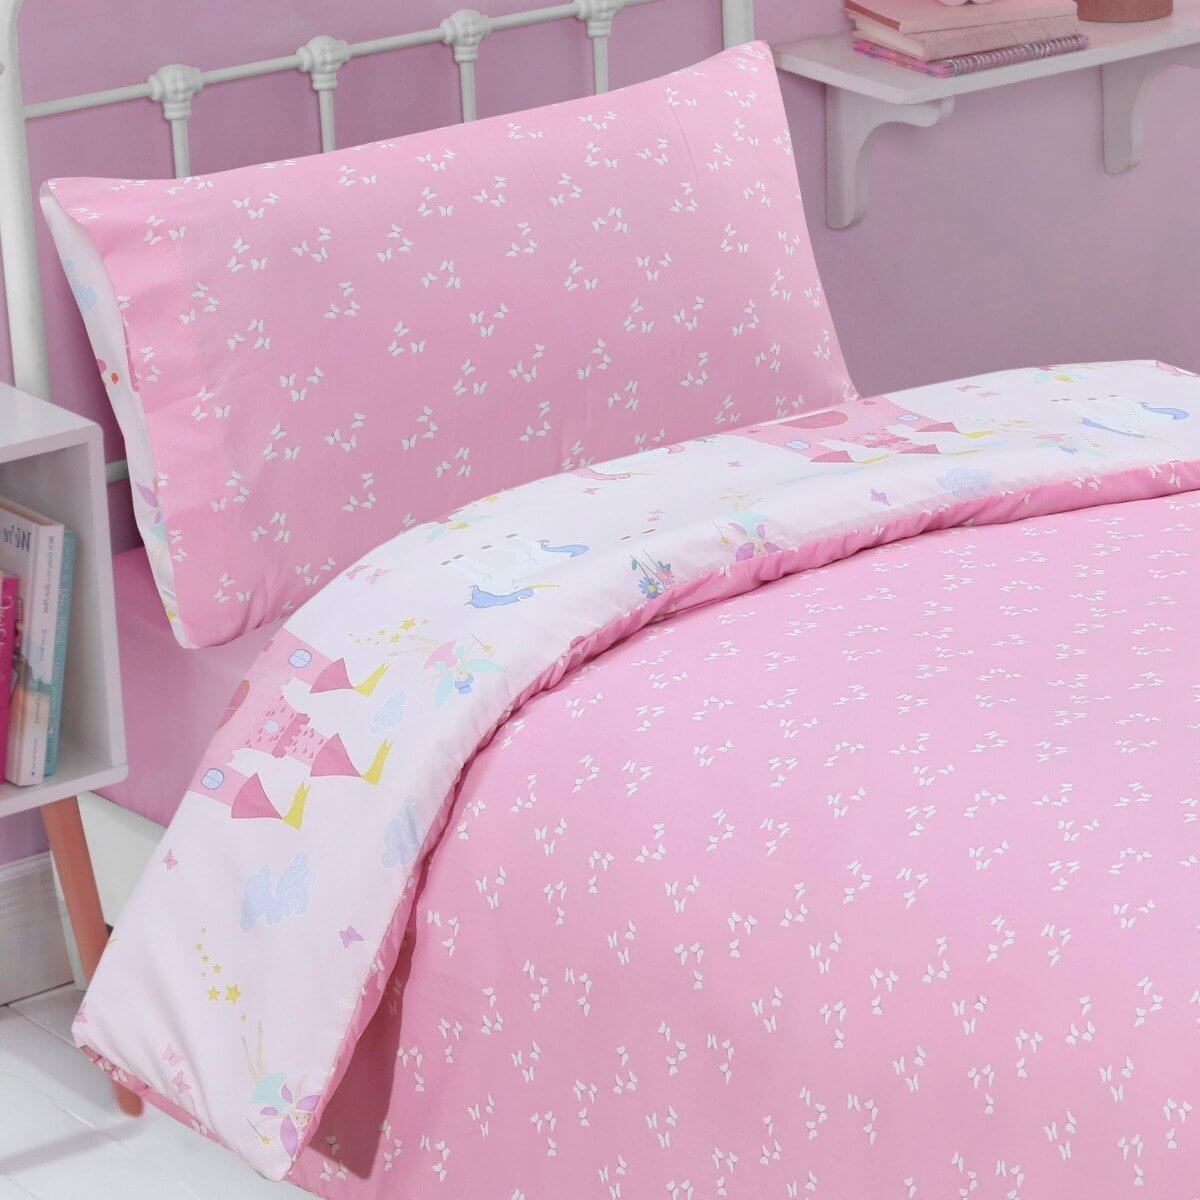 Magical Fairytale Pink Bedding - Reversible Duvet Cover and Pillowcase Set